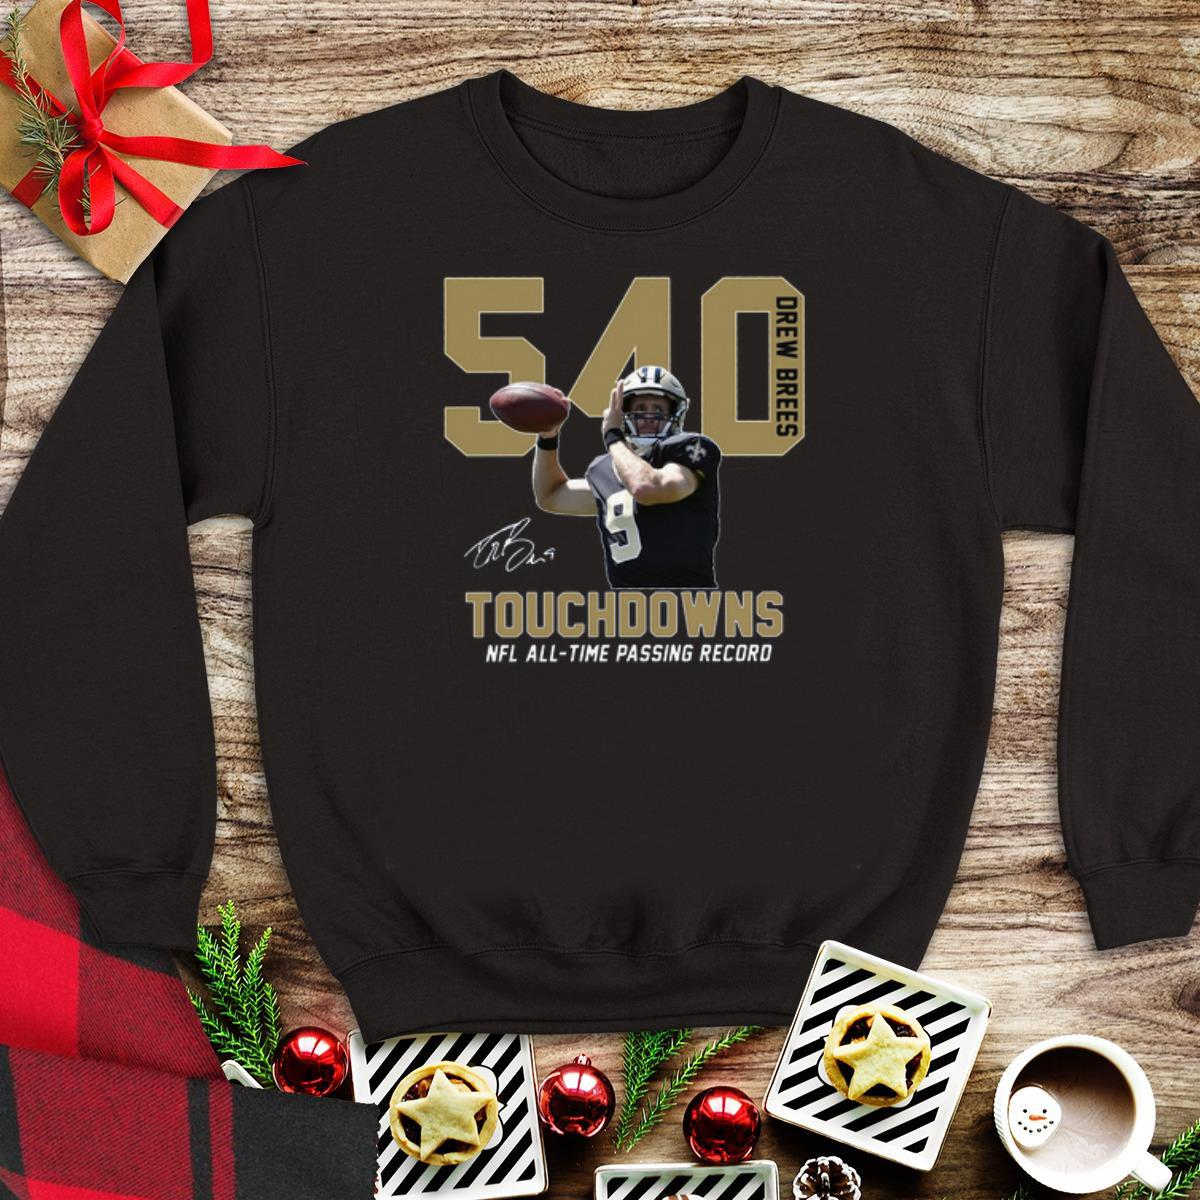 Awesome Drew Brees 540 Touchdowns NFL all-time passing record signature shirt